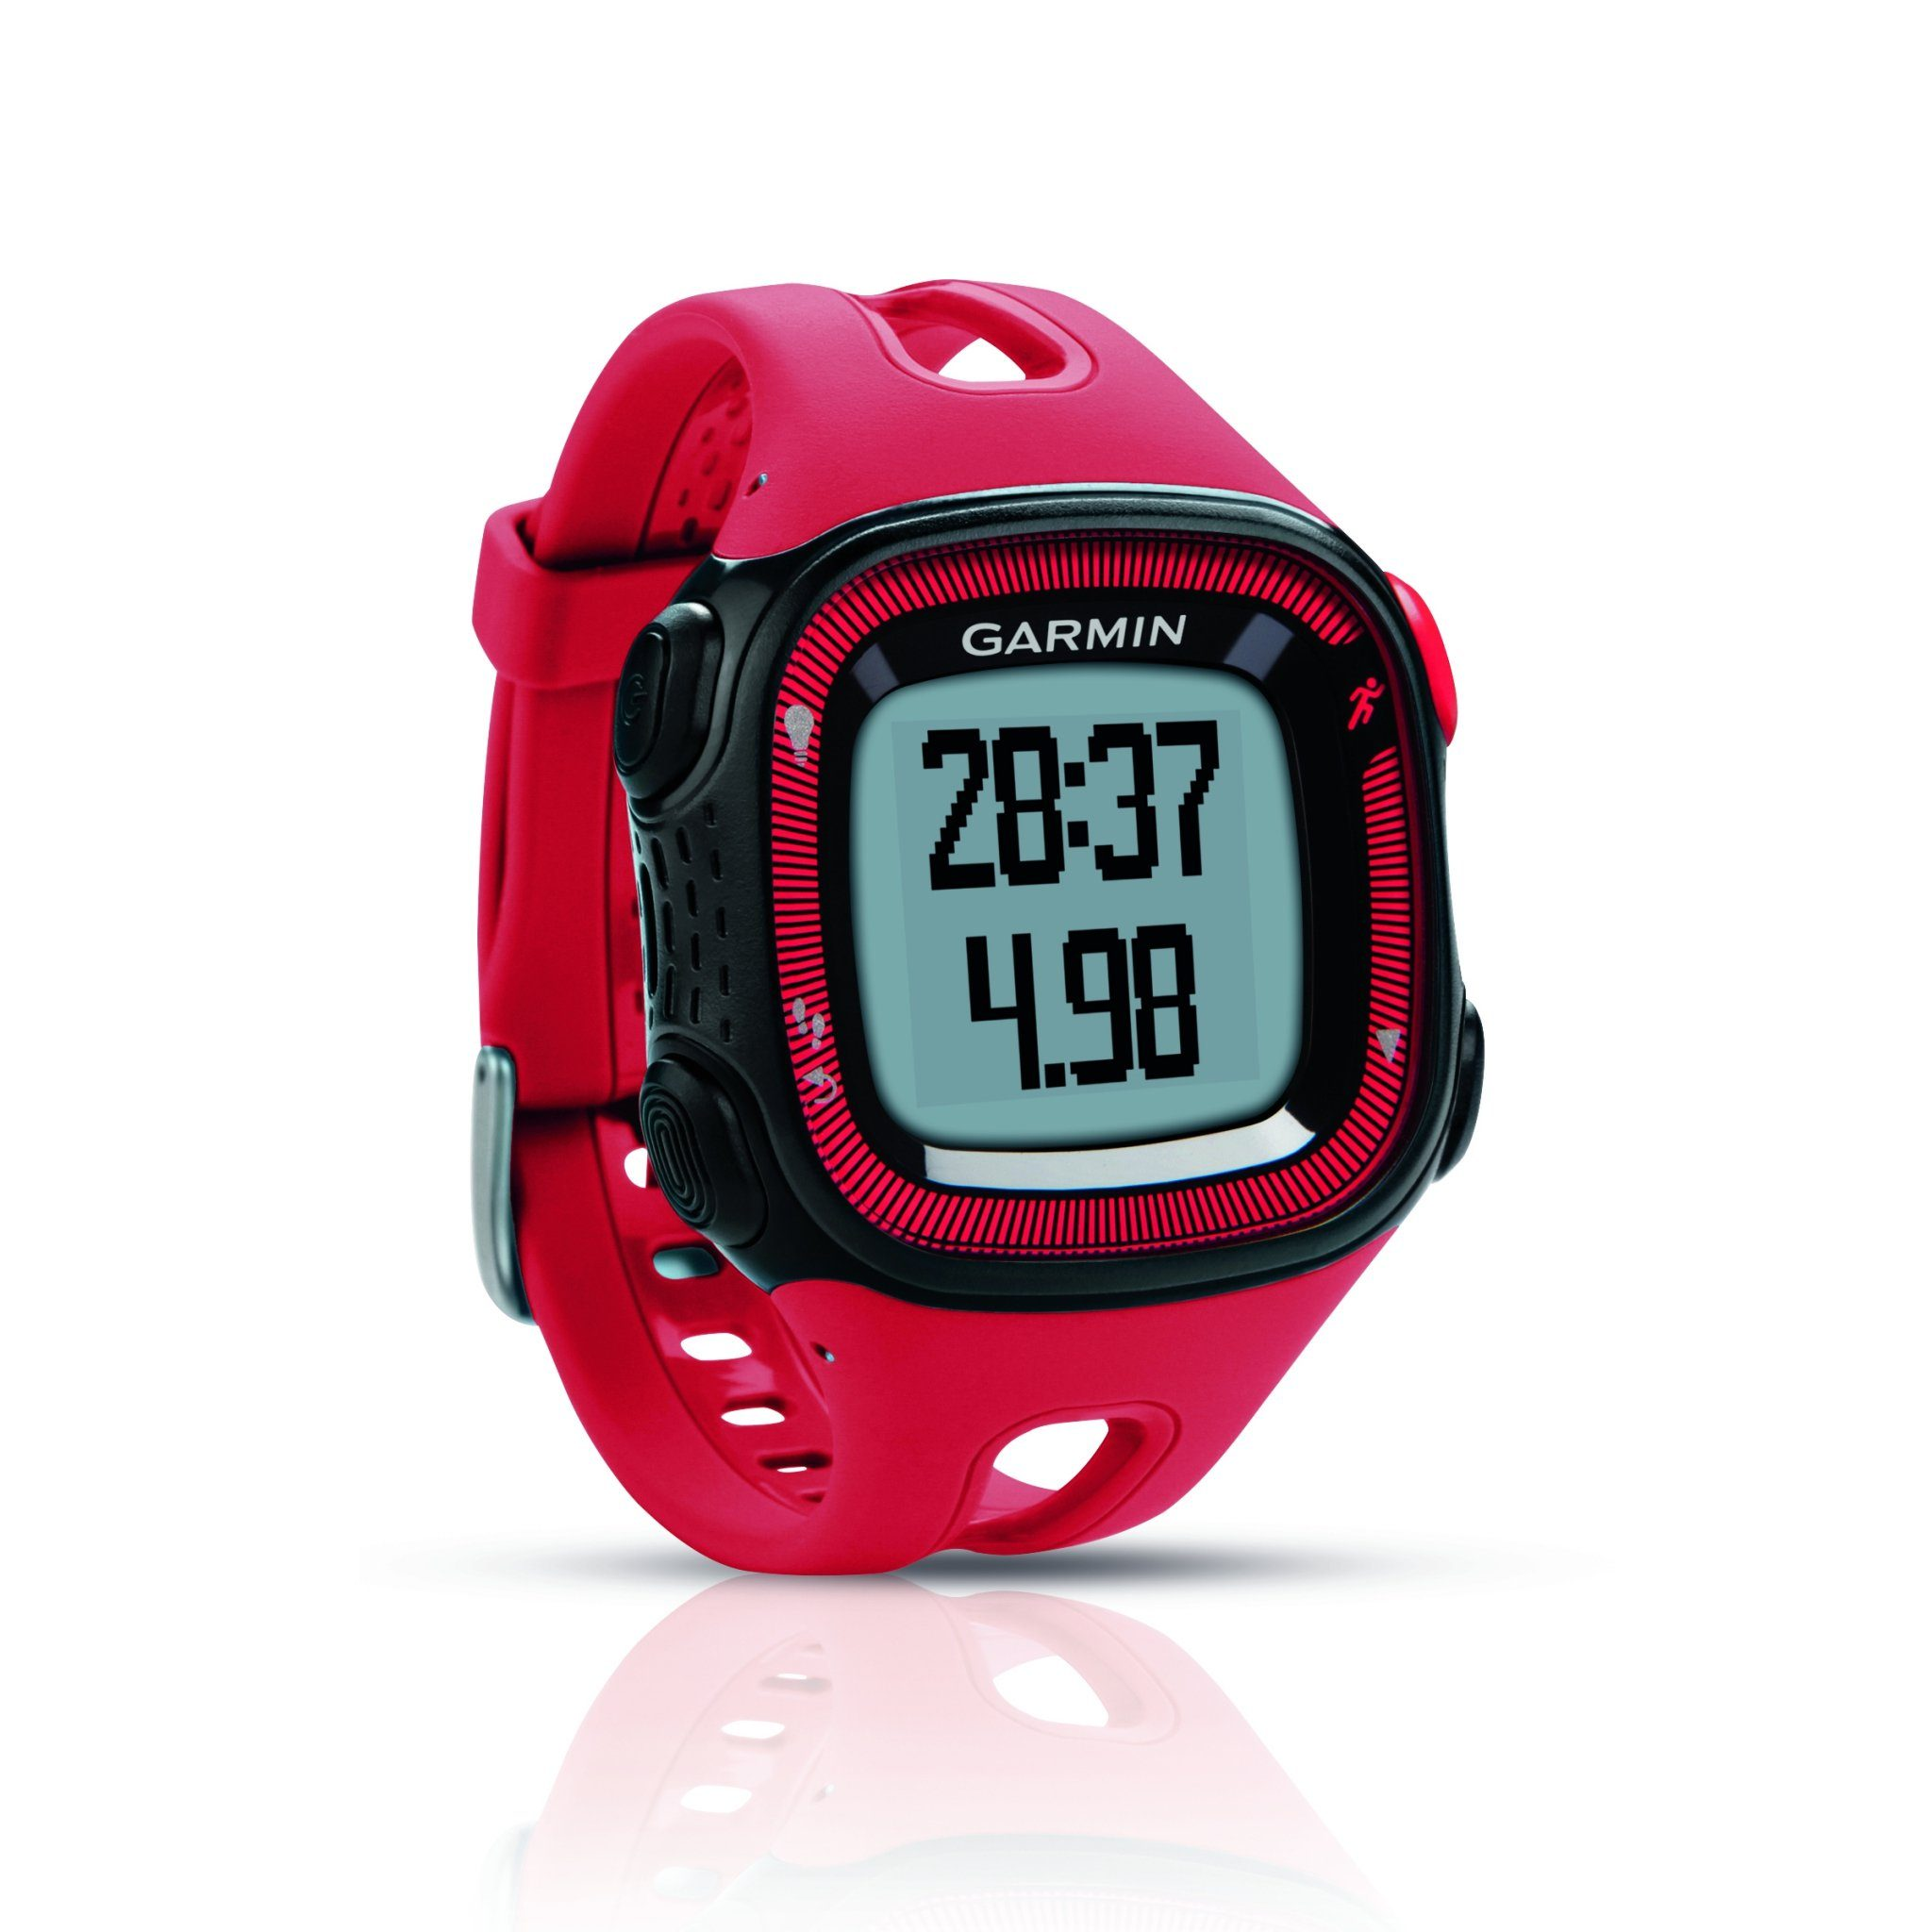 GARMIN Forerunner 15 GPS Running Watch - Red & Black | eBay